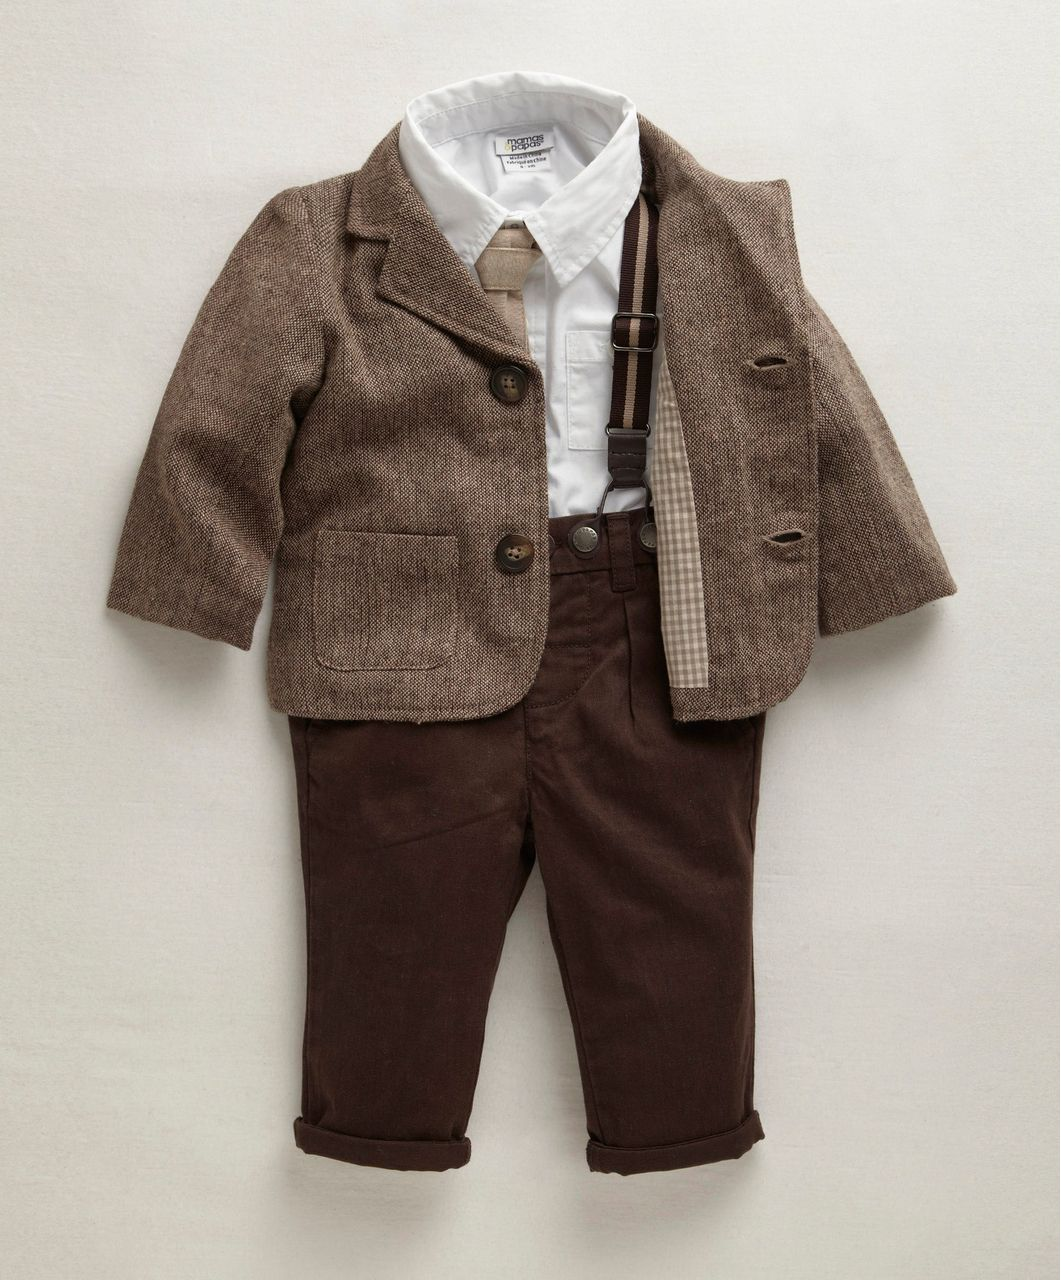 Boys Welcome To The World 5 Piece Jacket Set - Up To 60% Off Boys Clothes -  Mamas   Papas d7e62c353